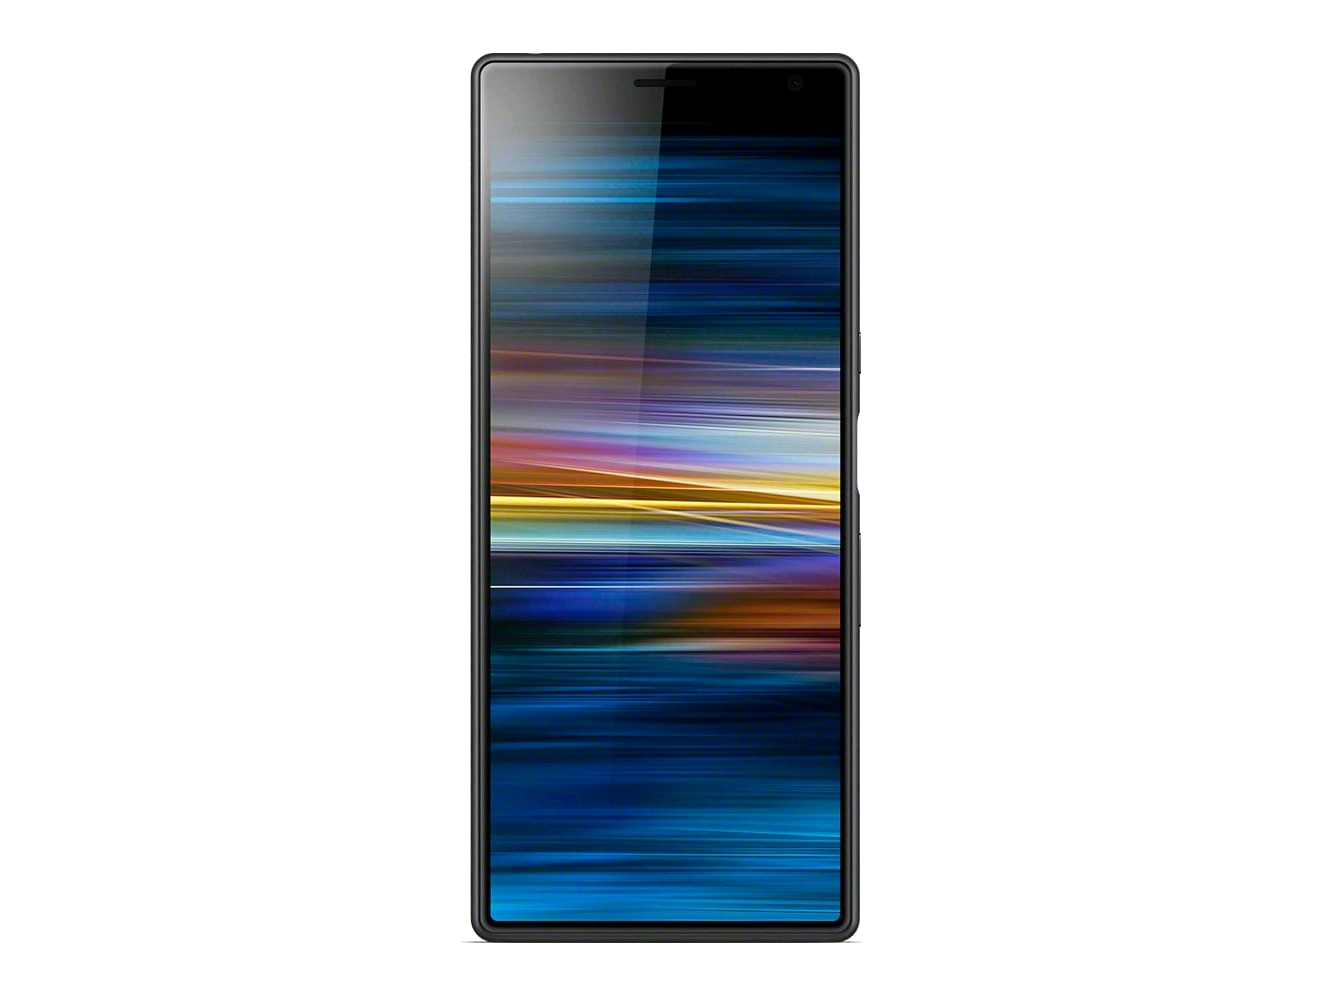 Hd Karte Crack.Sony Xperia 10 Smartphone Review Notebookcheck Net Reviews